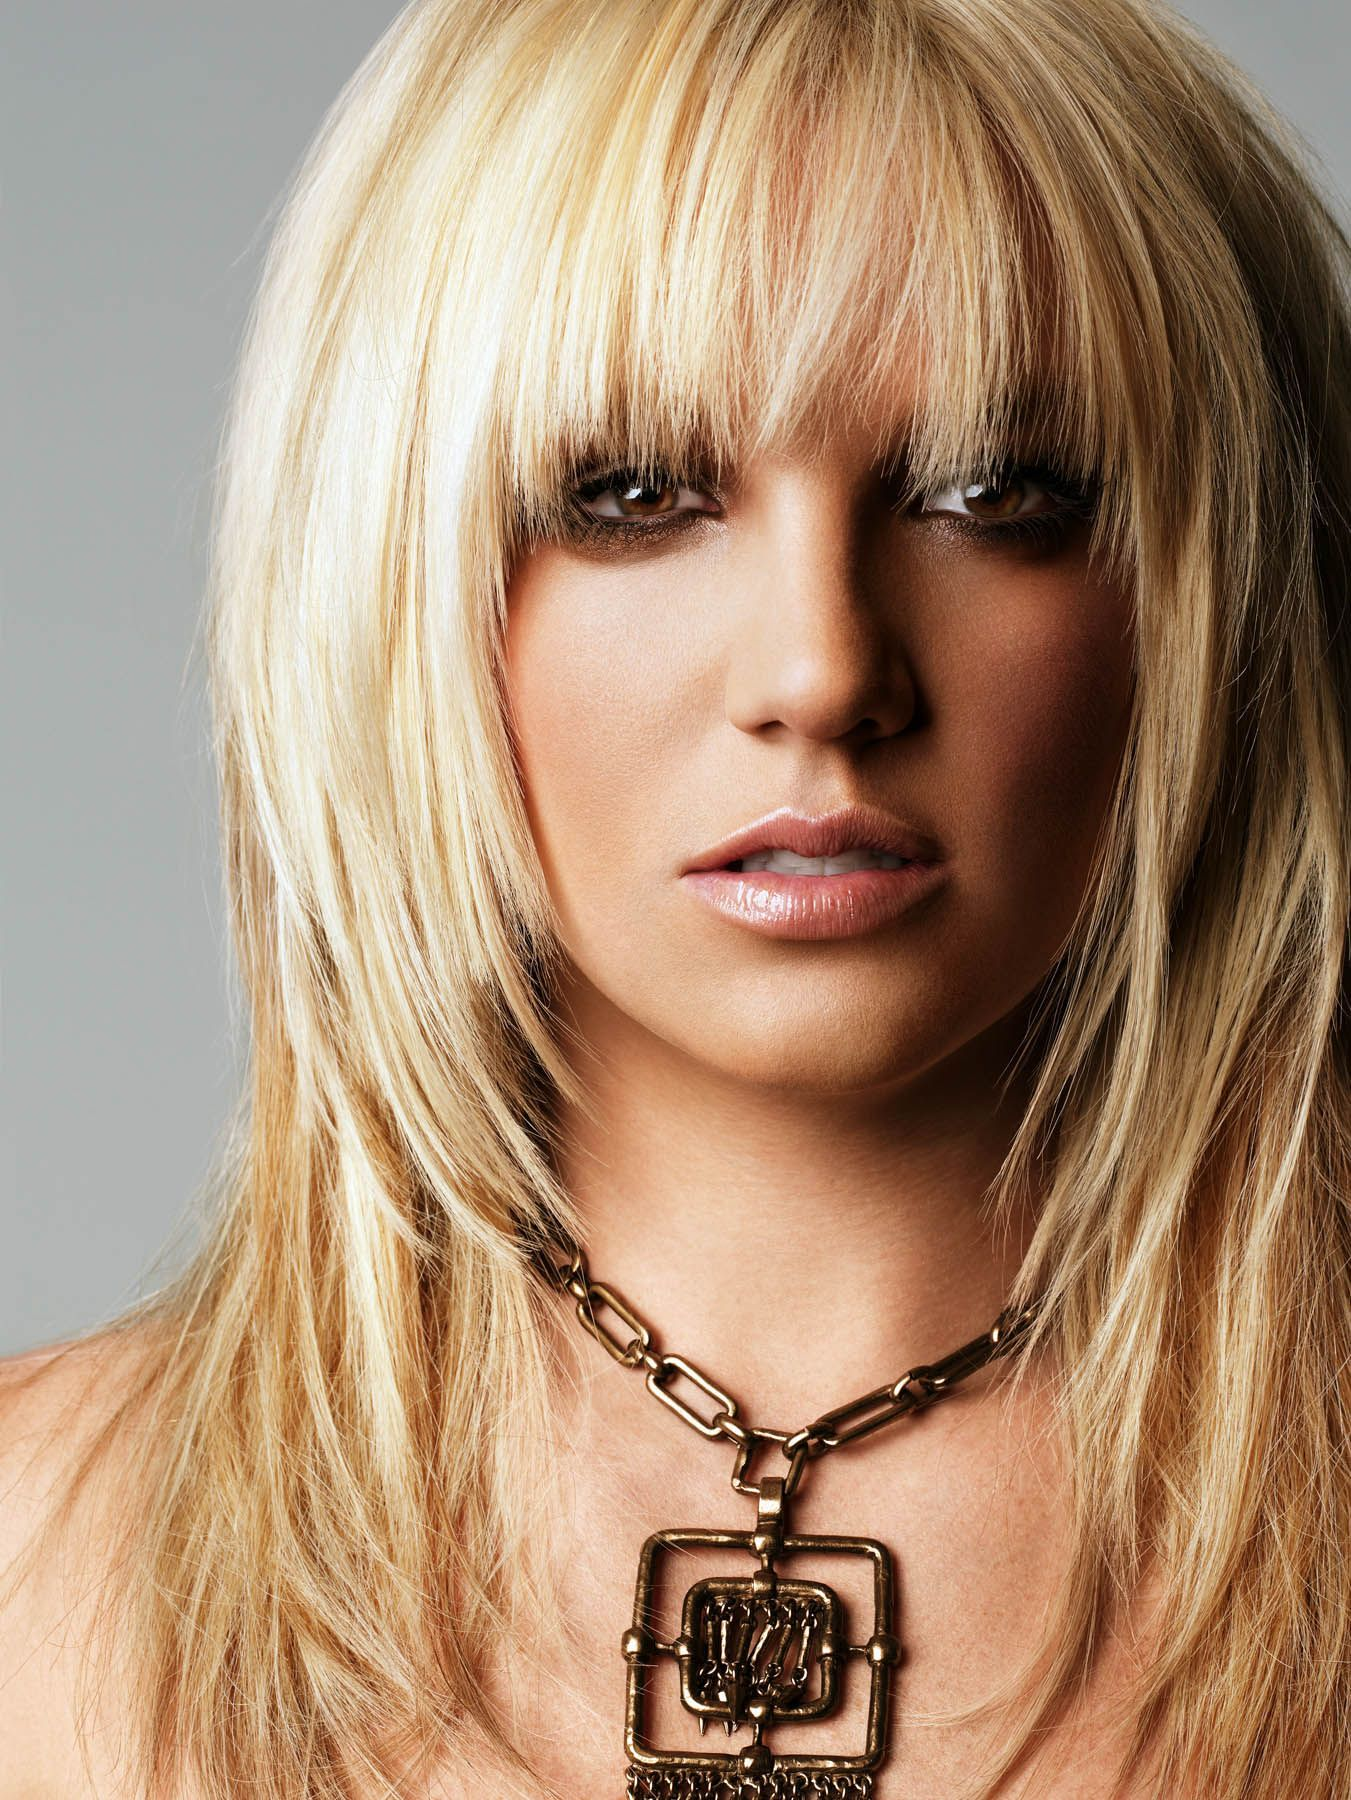 Roberterdmannshootg photo by nicnever photobucket britney